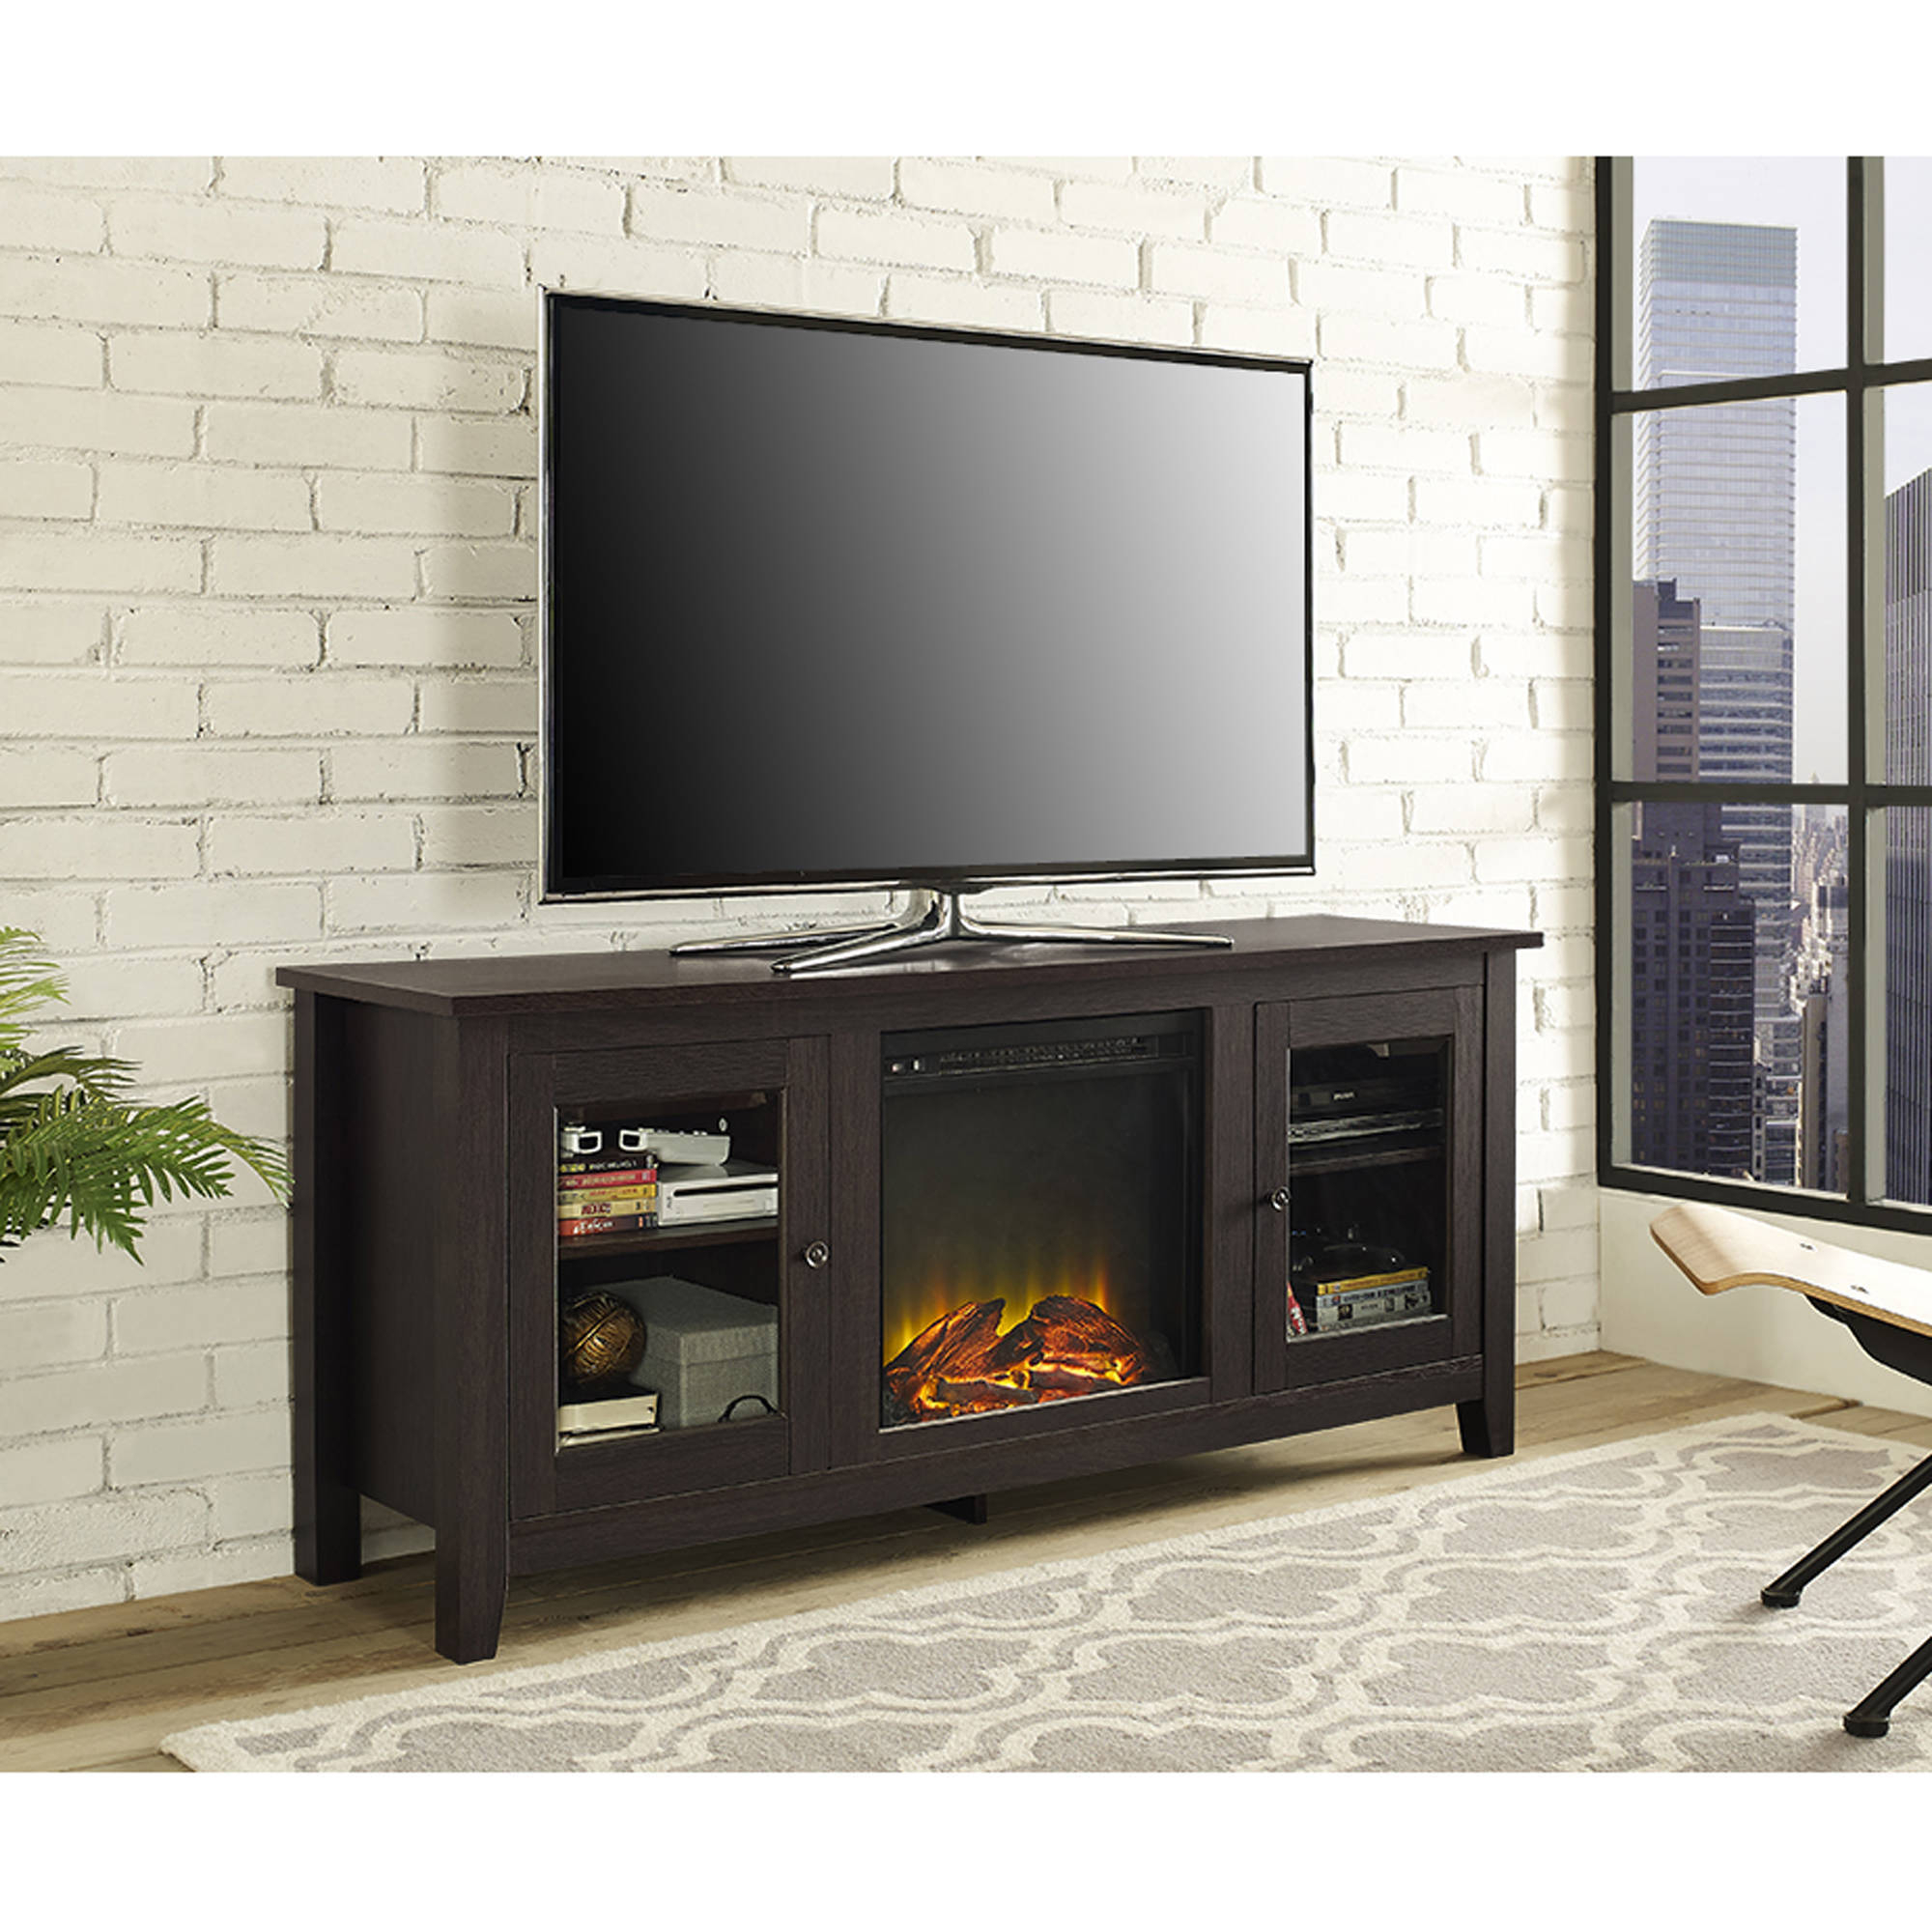 24 Inch Corner Tv Stands Intended For Widely Used Tv Stands & Entertainment Centers – Walmart (View 6 of 20)